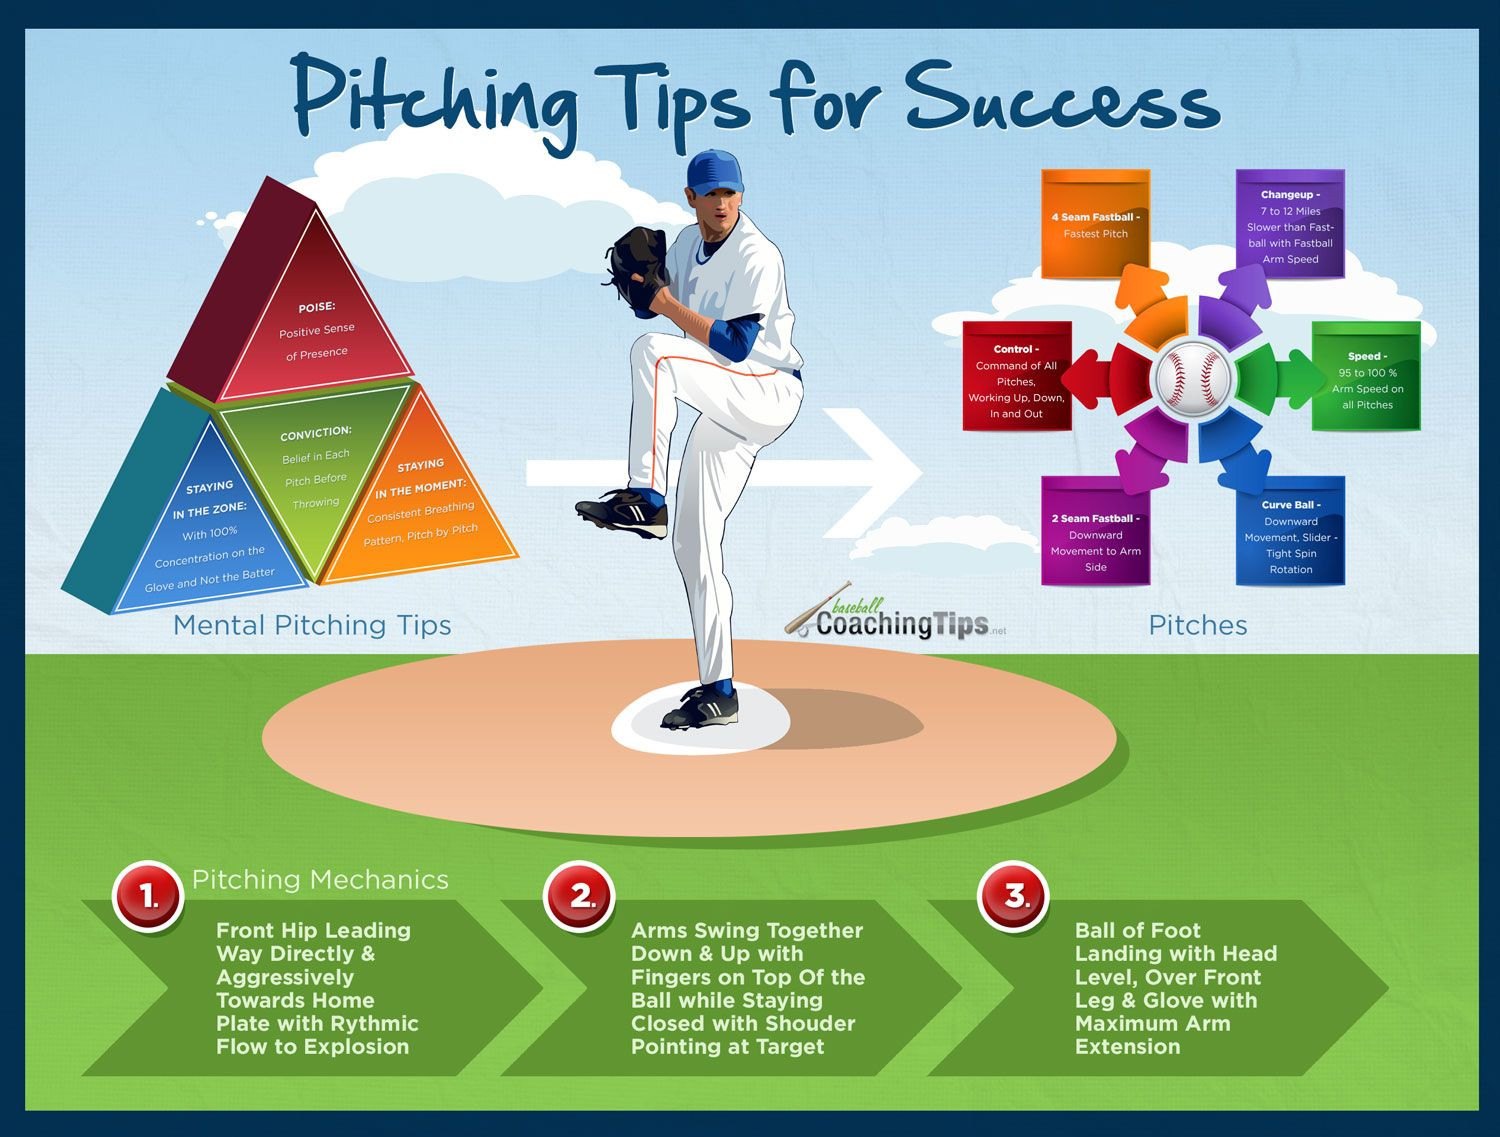 Baseball Pitching Charts Wonderful Pitching Tips for Success